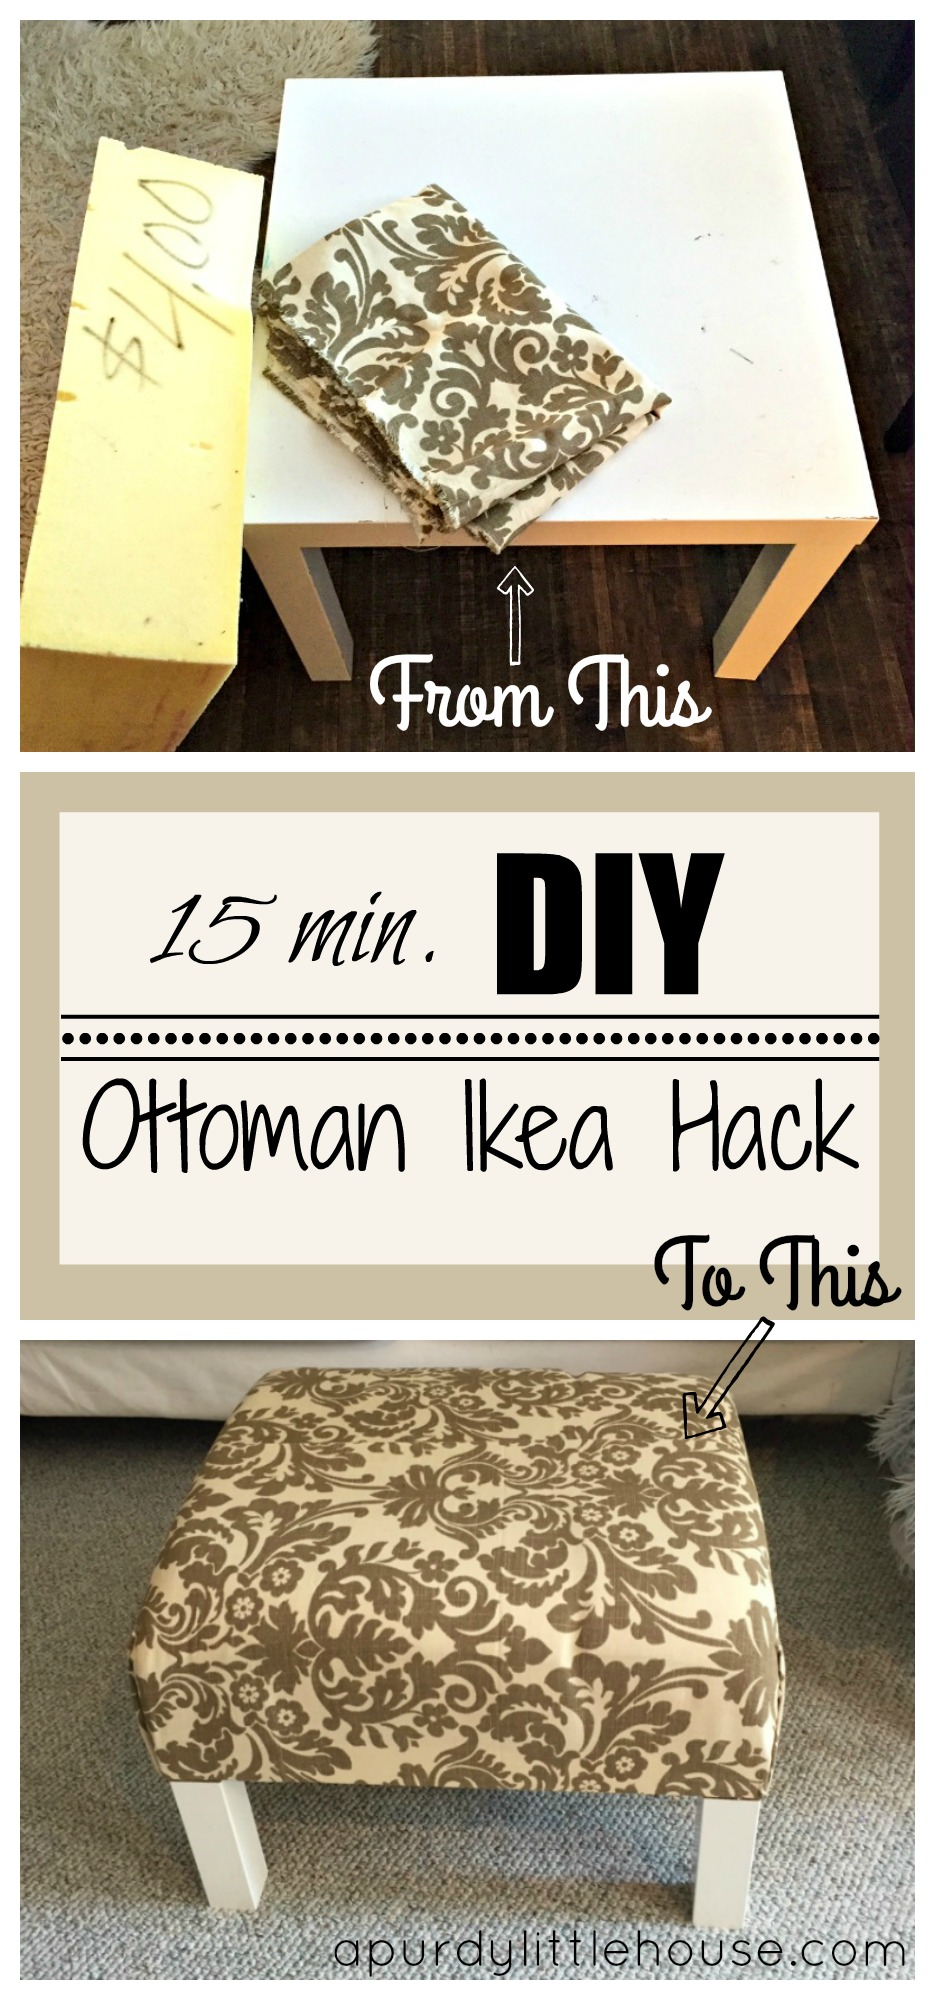 15 Minute DIY Ottoman Coffee Table Ikea Hack was one of the Best DIY Projects of 2016. How to turn a plain old end table into a stylish ottoman apurdylittlehouse.com